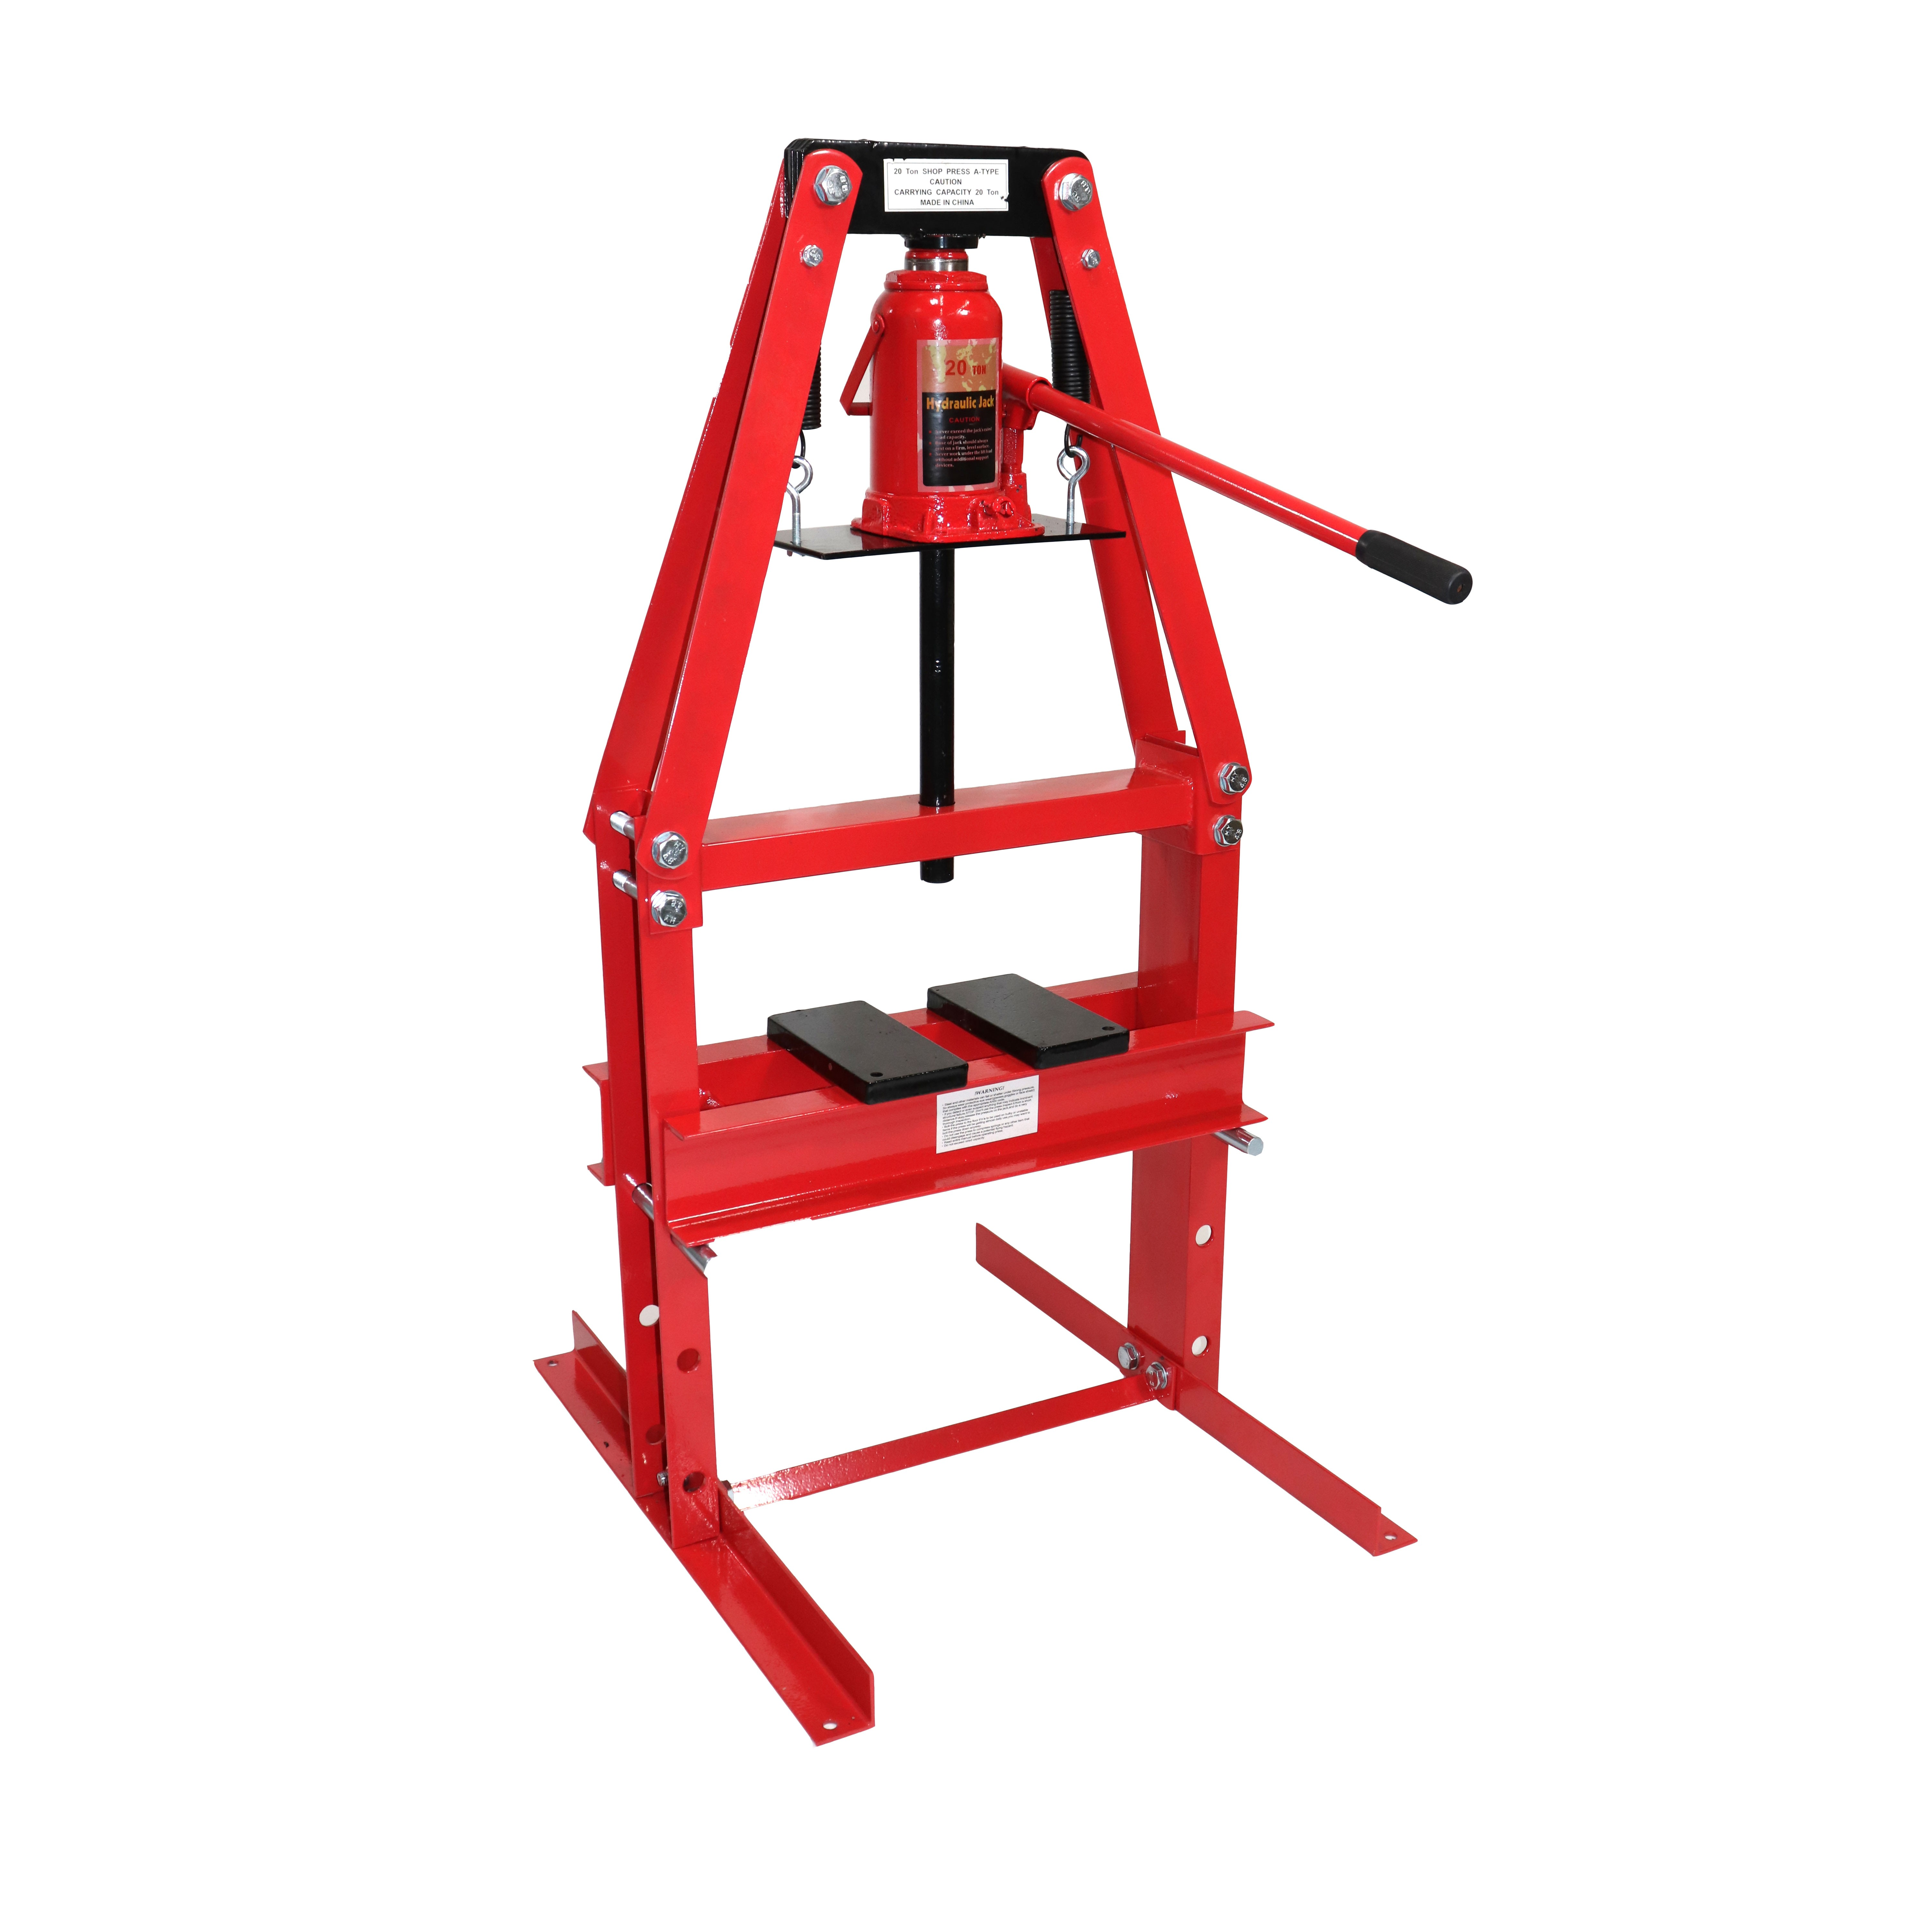 Dragway Tools 20 Ton A-Frame Shop Press with Plates